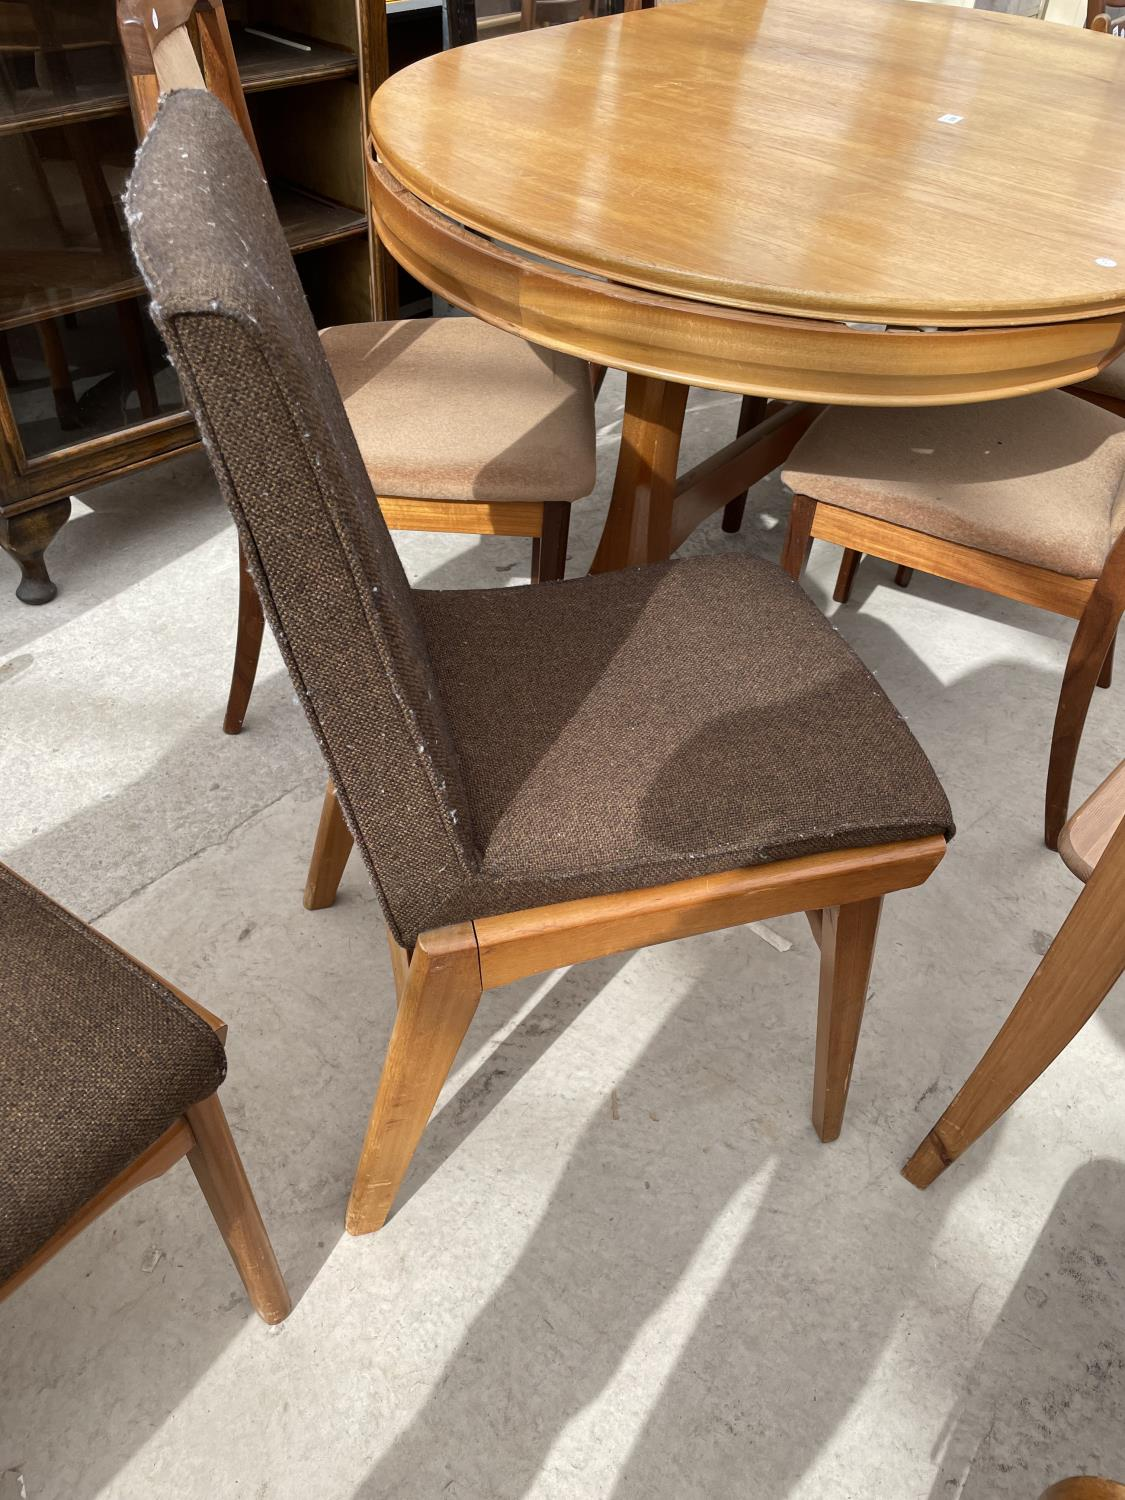 A SET OF SIX RETRO DINING CHAIRS WITH UPHOLSTERED BACKS AND SEATS - Image 8 of 8